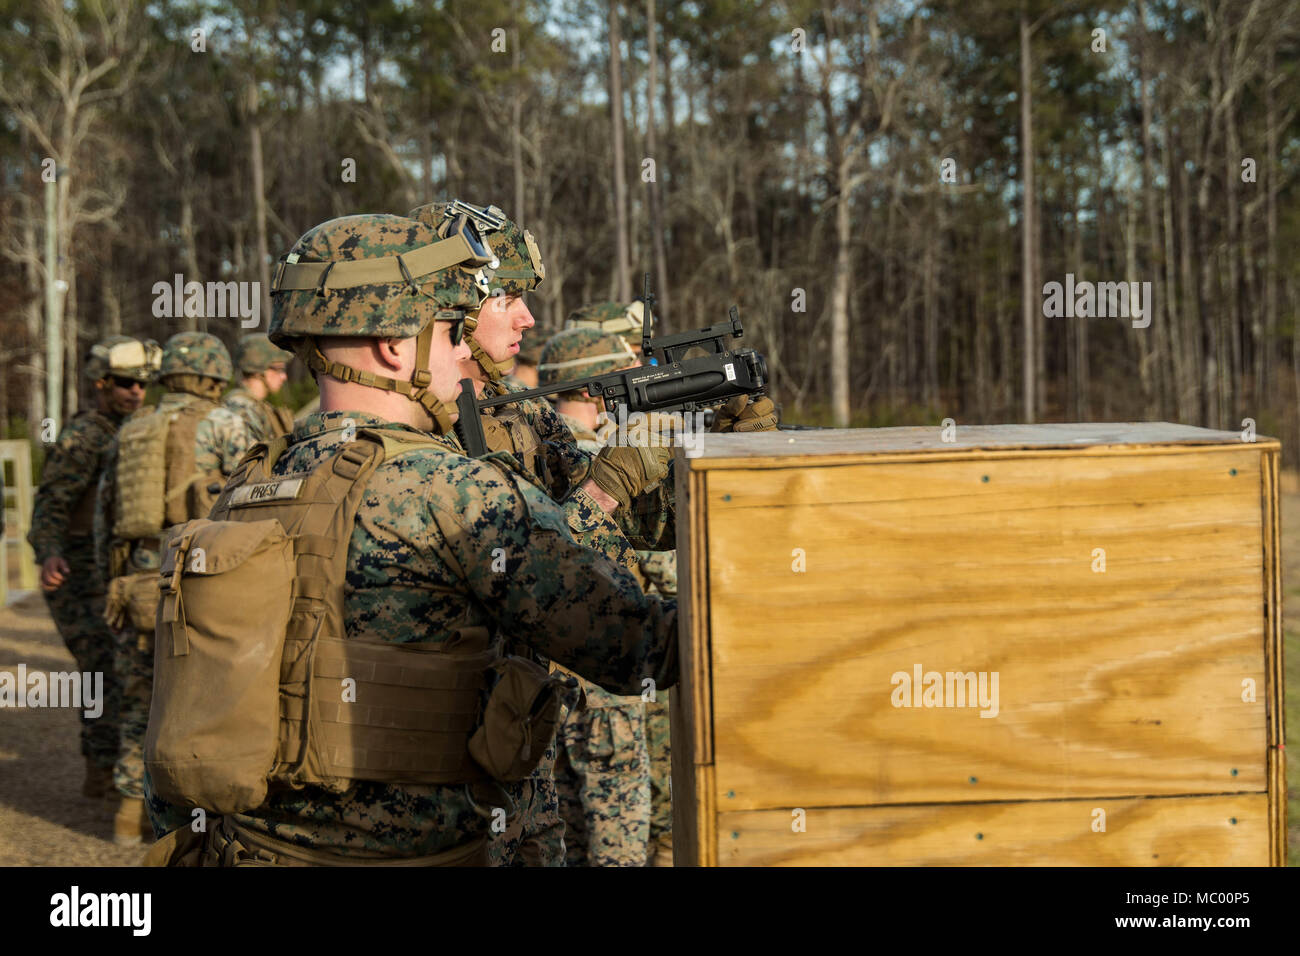 U.S. Marine Sgt. Sean A. O'Neill, center, a rifleman with Battalion Landing Team, 2nd Battalion, 6th Marine Regiment, 26th Marine Expeditionary Unit (MEU), prepares to fire an M320A1 40mm grenade launcher during a live-fire shooting range on Camp Lejeune, N.C., Jan. 16, 2018. The shooting range was held to increase the unit's proficiency and knowledge of 40-mm high-explosive grenade launching weaponry for the upcoming deployment of both Marines and Sailors. (U.S. Marine Corps photo by Lance Cpl. Tojyea G. Matally) - Stock Image